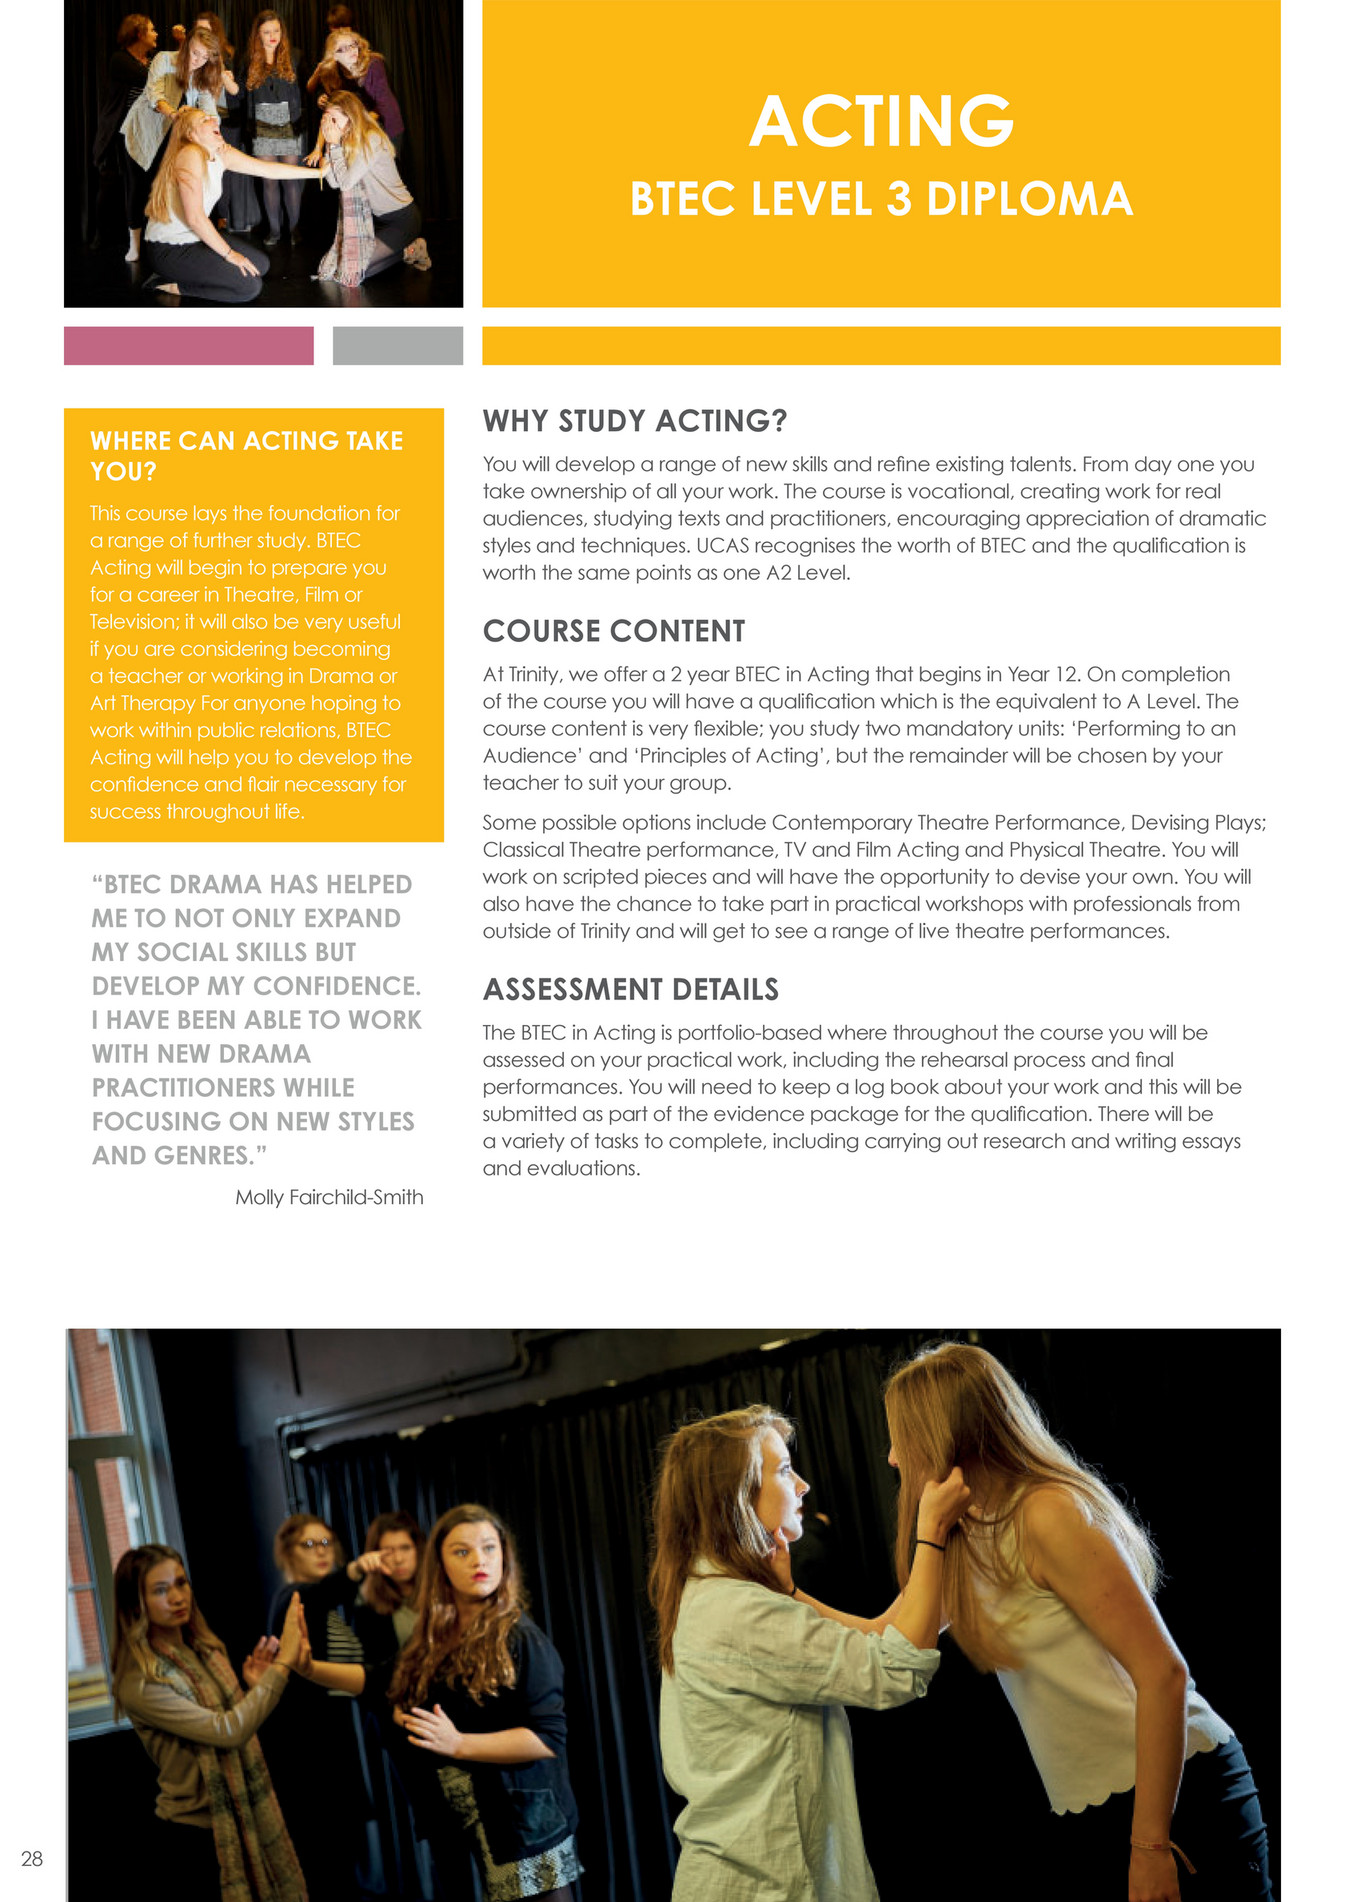 newbury academy trust trinity school sixth form prospectus 2017 a variety of tasks to complete including carrying out research and writing essays and evaluations